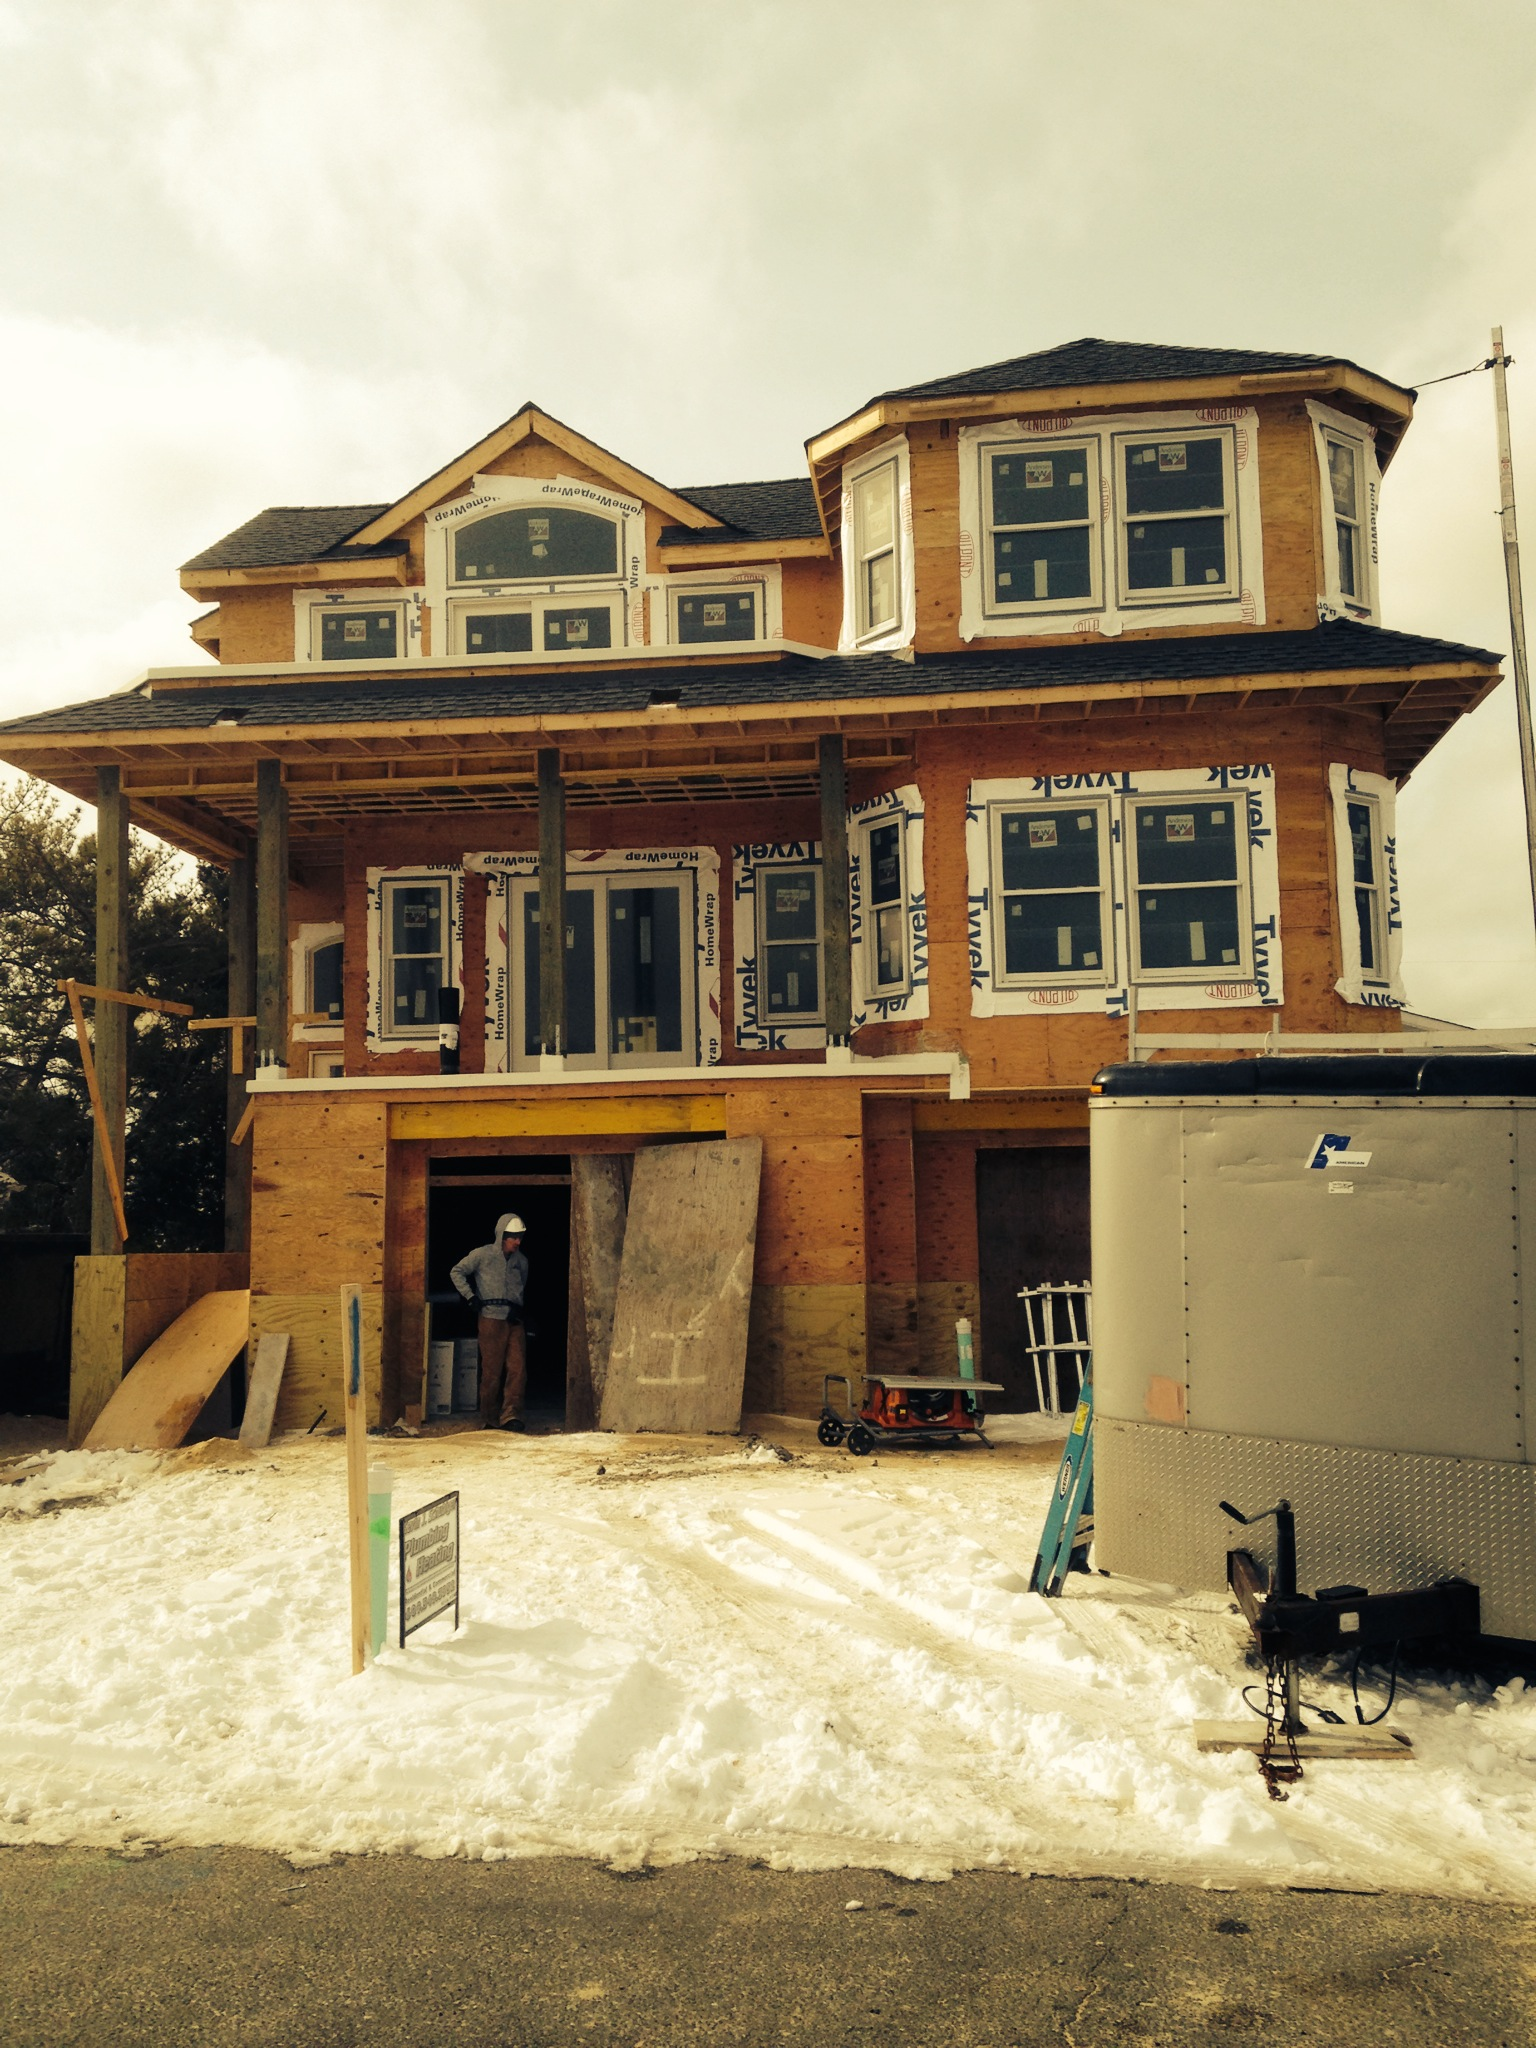 coastal-roofing-and-siding-work-in-progress-long-beach-island-04